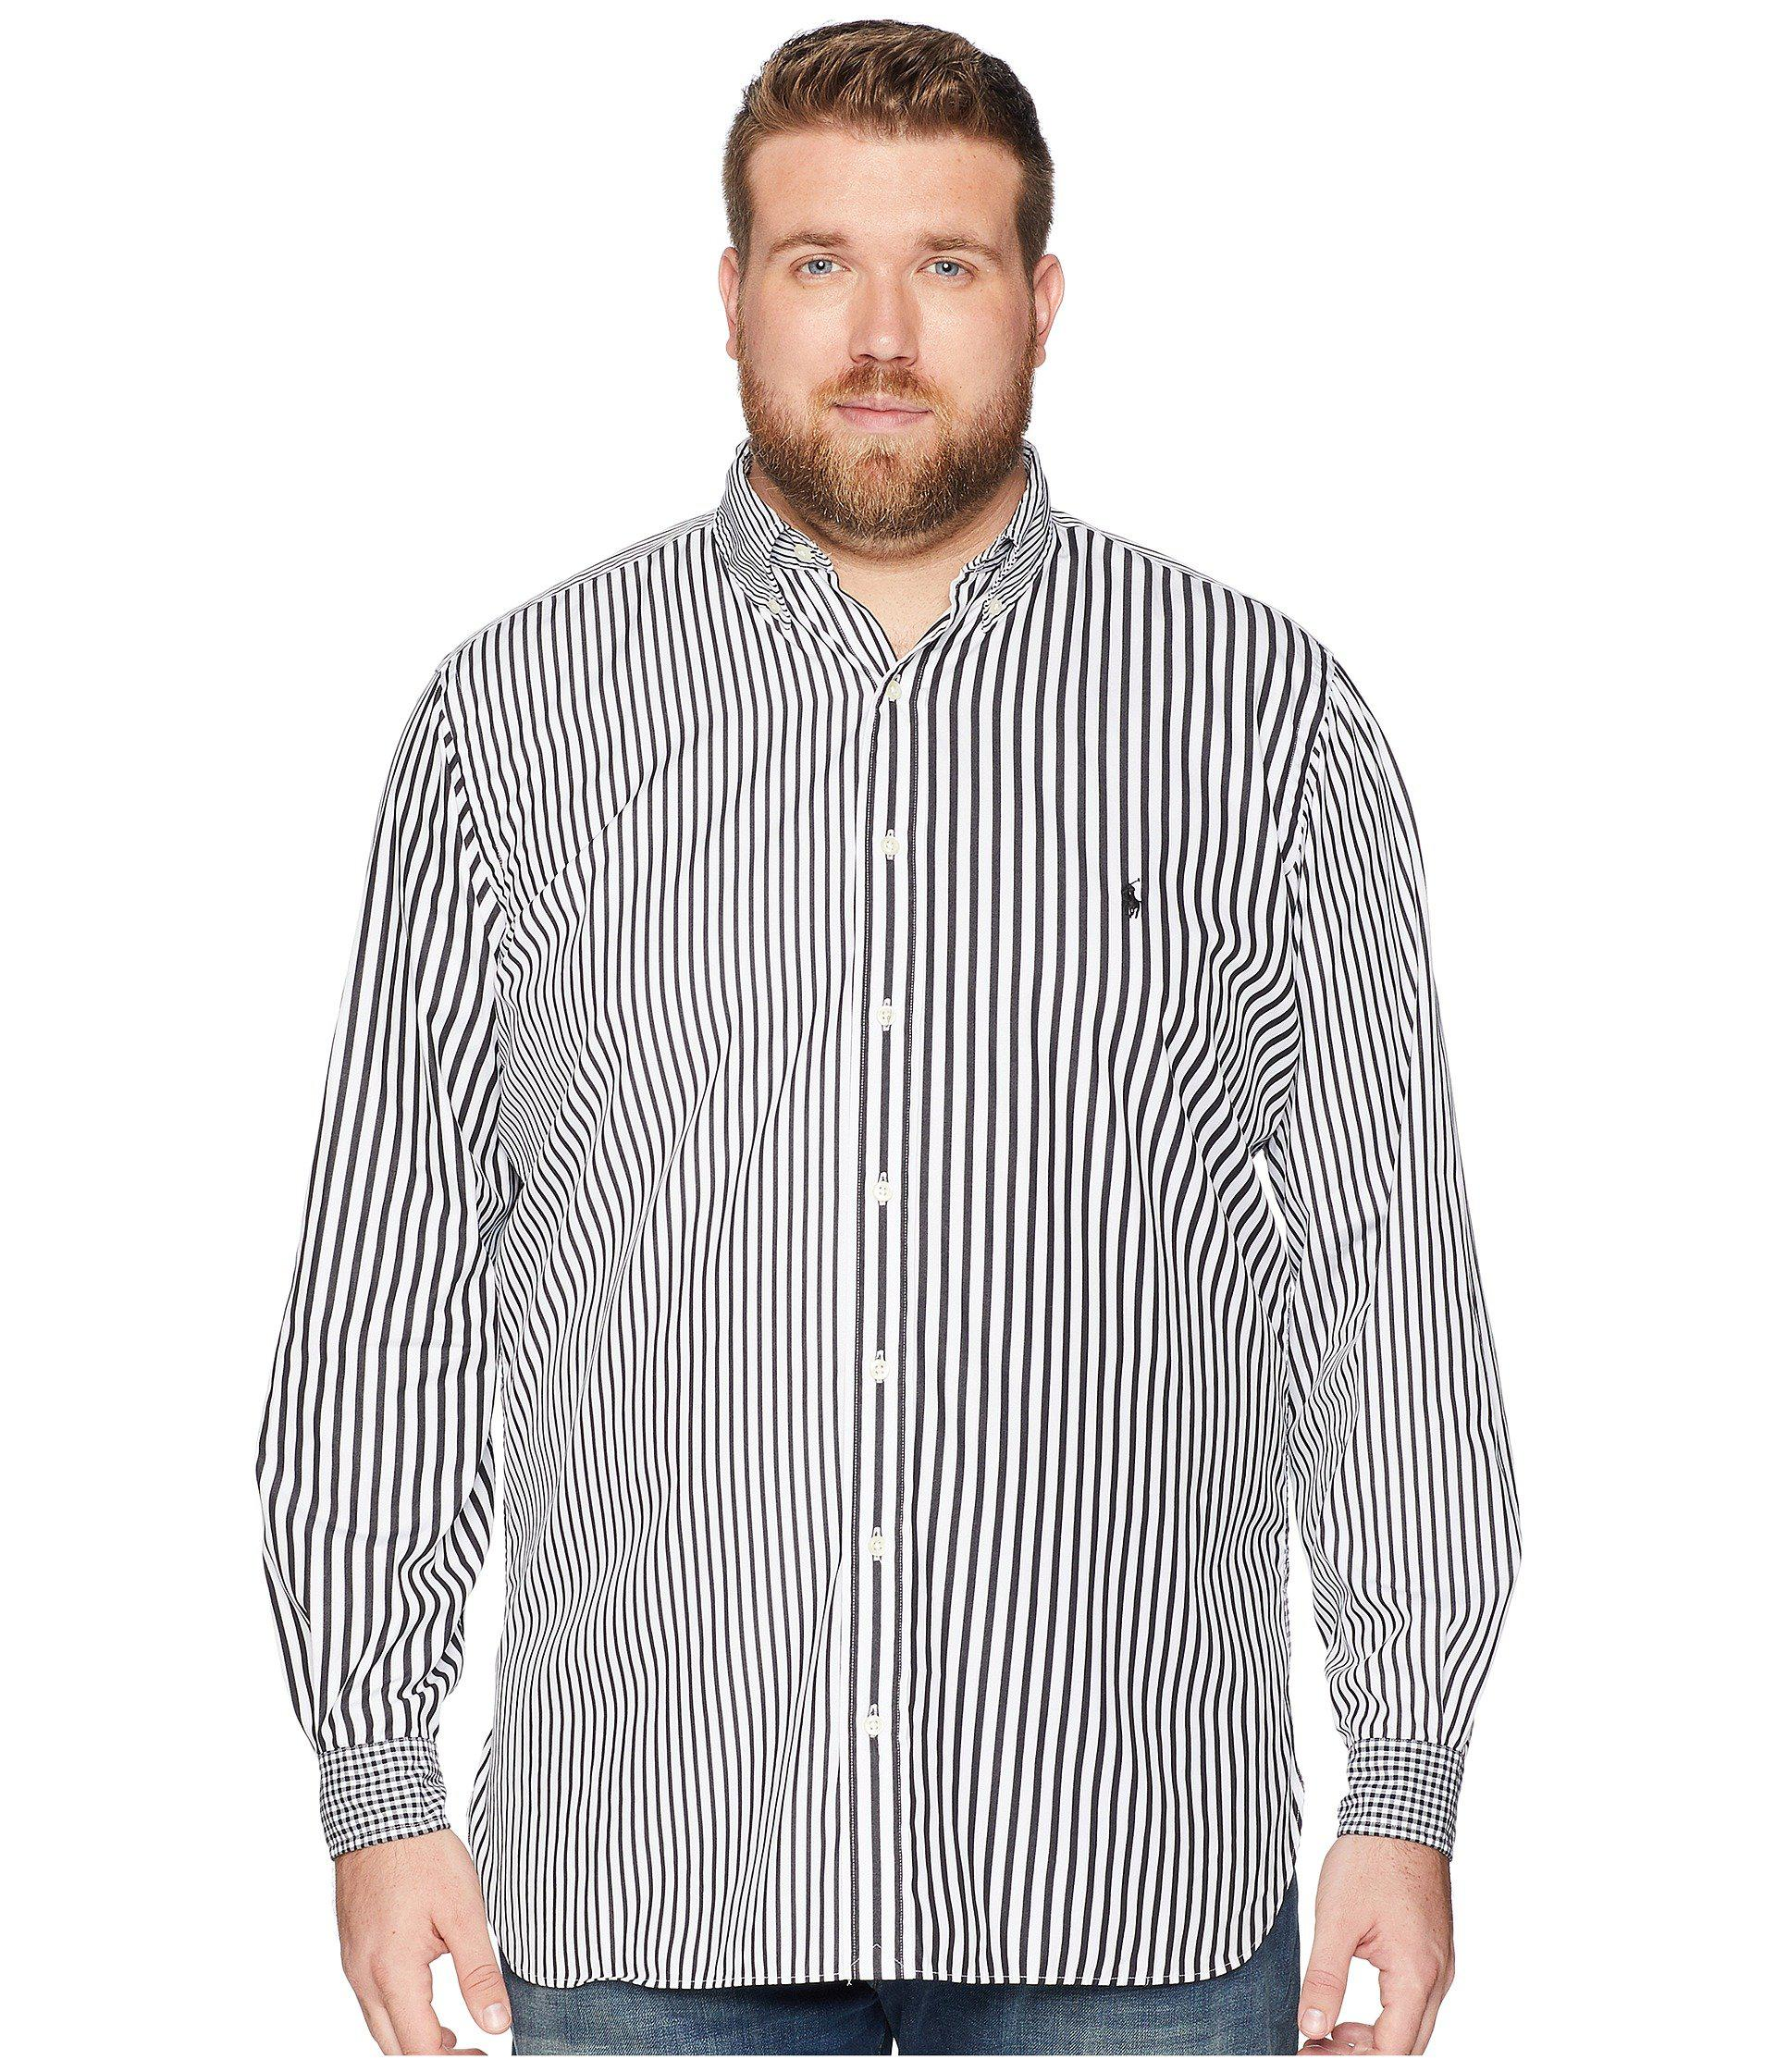 f4b0e3df2 clearance lyst polo ralph lauren slim fit large check shirt in red ...